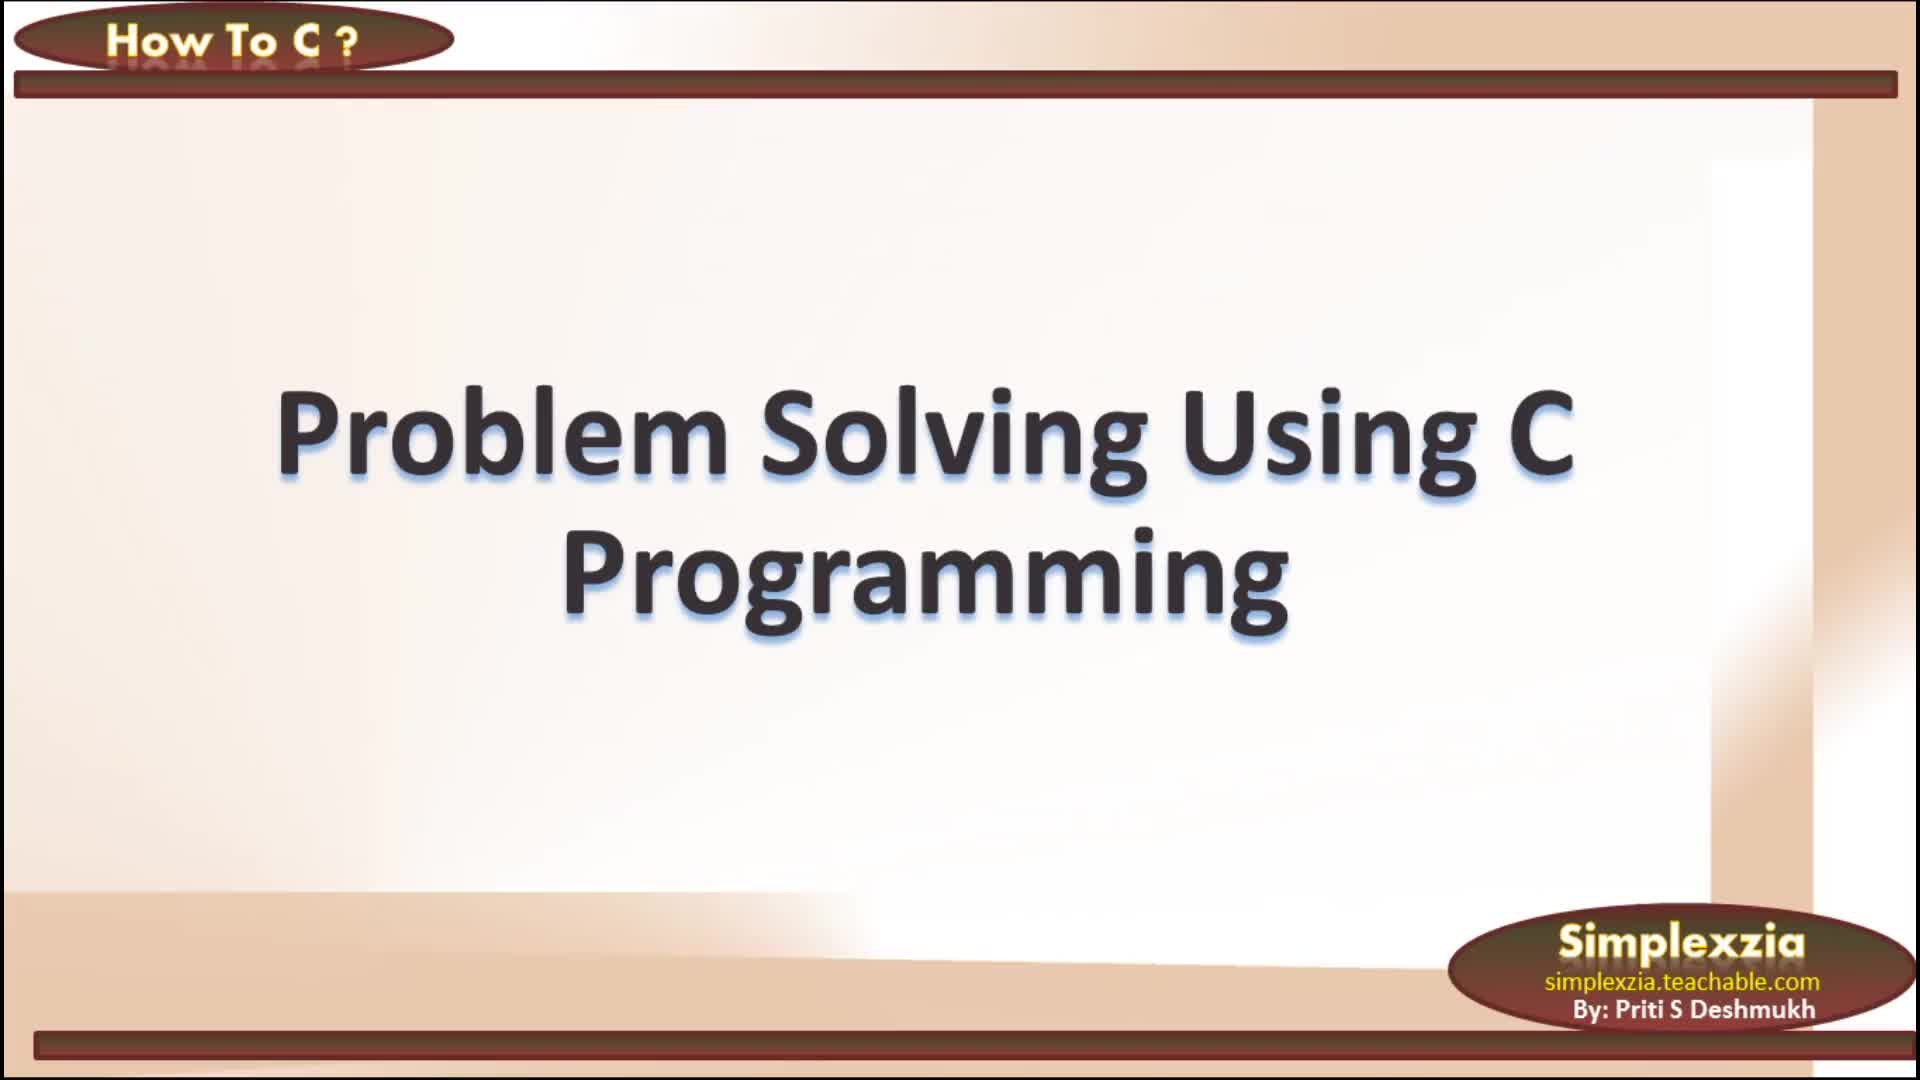 How to solve problem Using C Programming